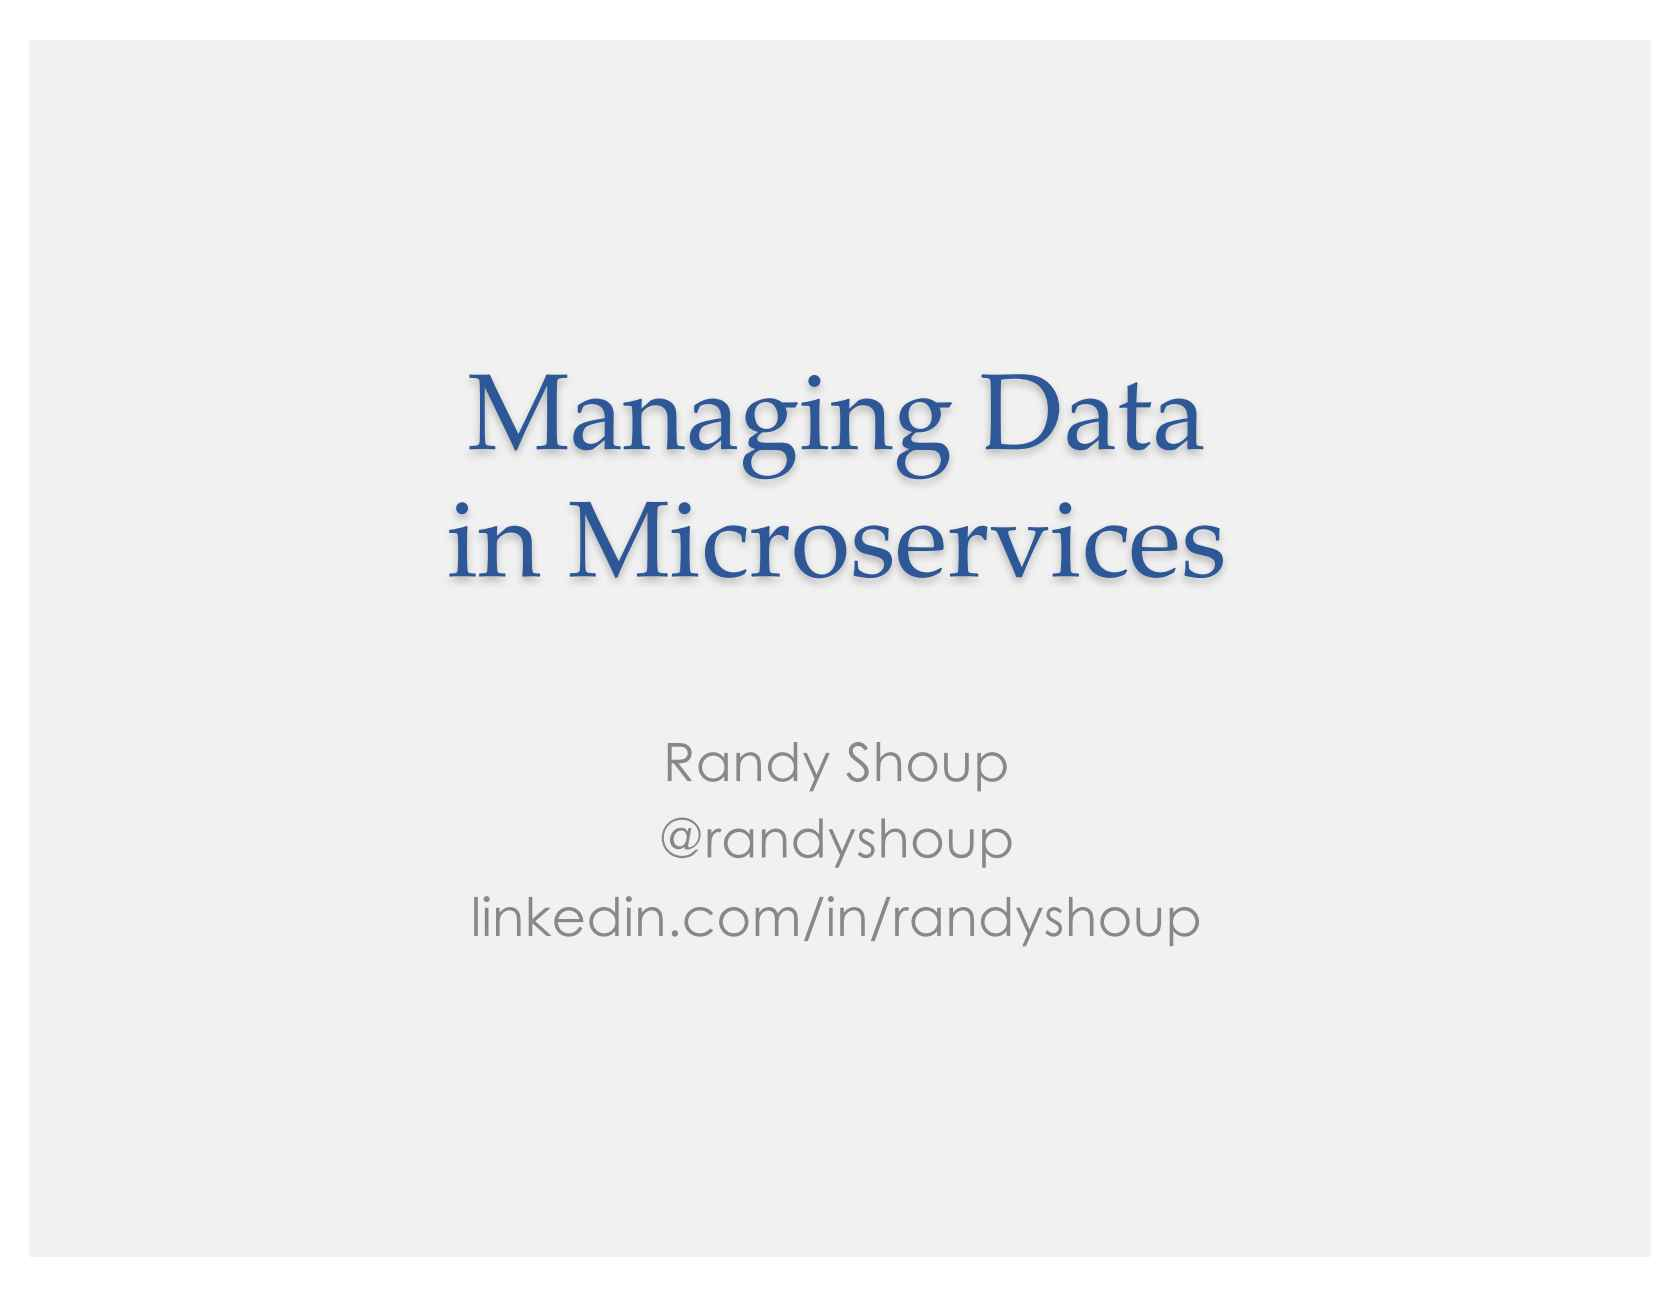 Managing Data in Microservices